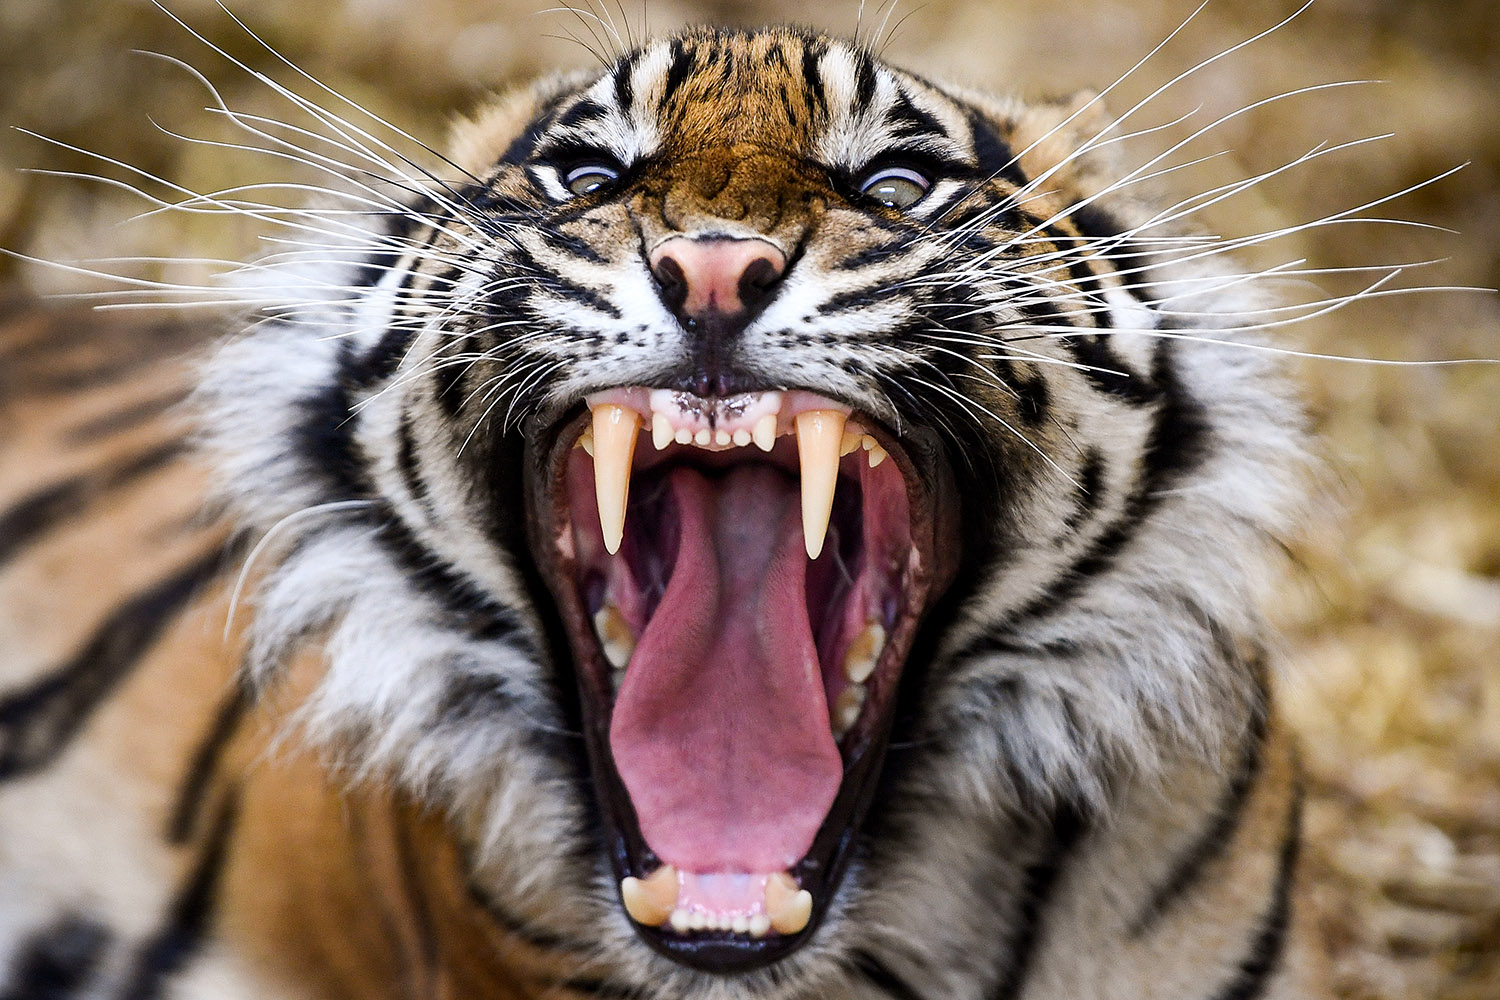 Dharma the Sumatran tiger yawns as members of the public return to Edinburgh Zoo in Scotland on June 29 for the first time since the coronavirus lockdown began. Jeff J. Mitchell/Getty Images